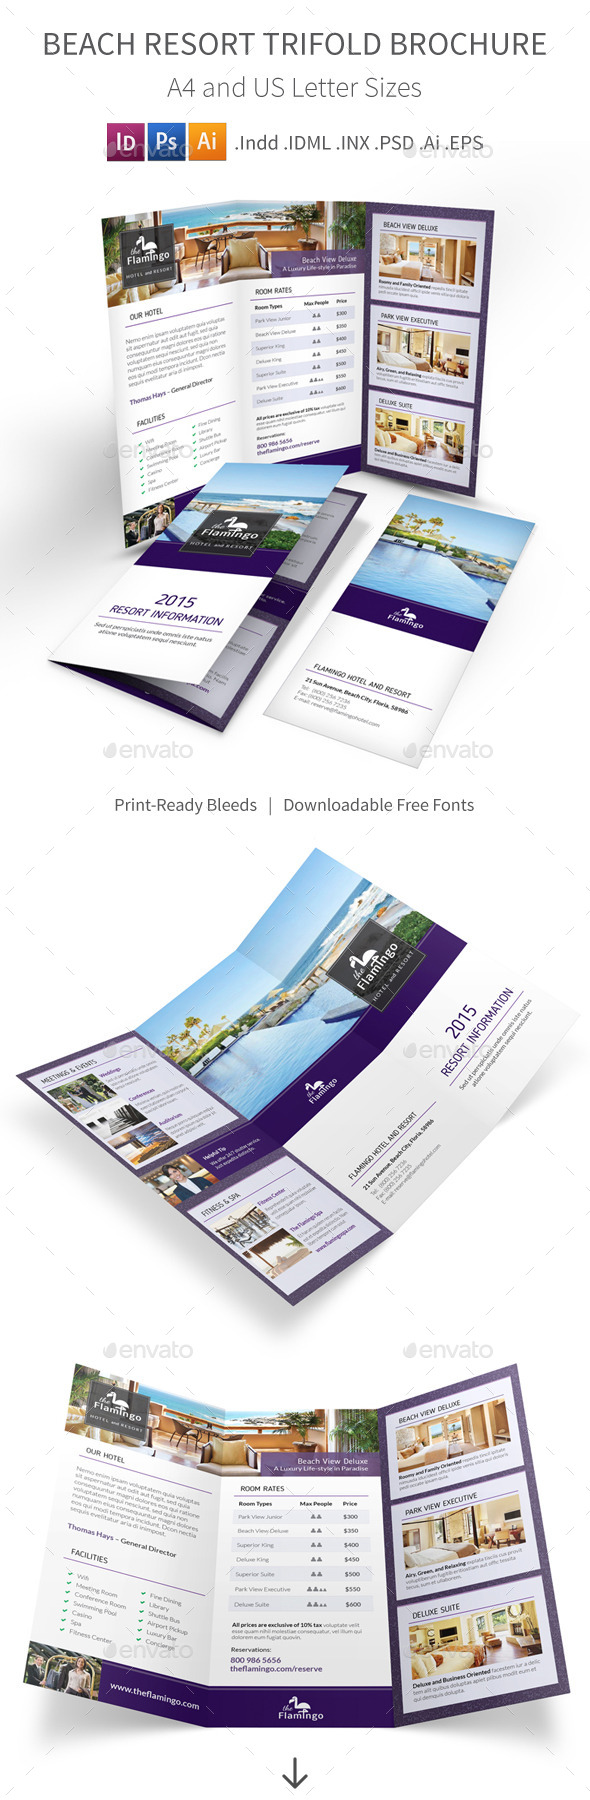 GraphicRiver Beach Resort Trifold Brochure 11293348